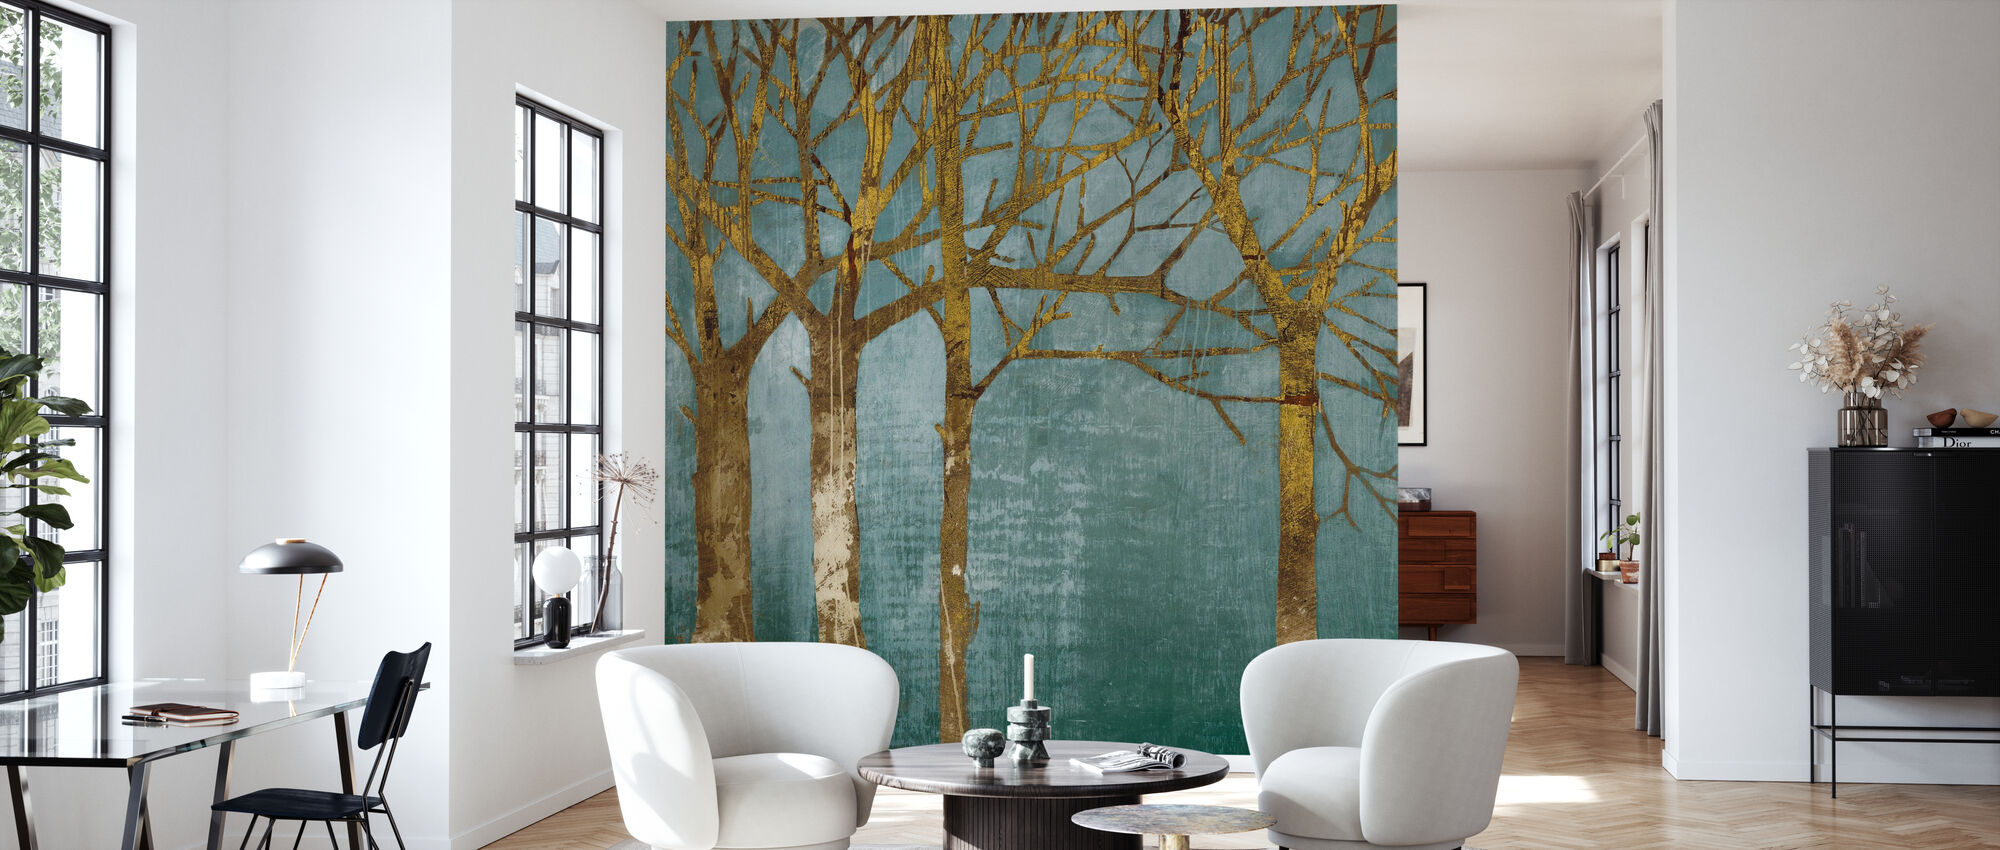 Golden Day Turquoise - Wallpaper - Living Room